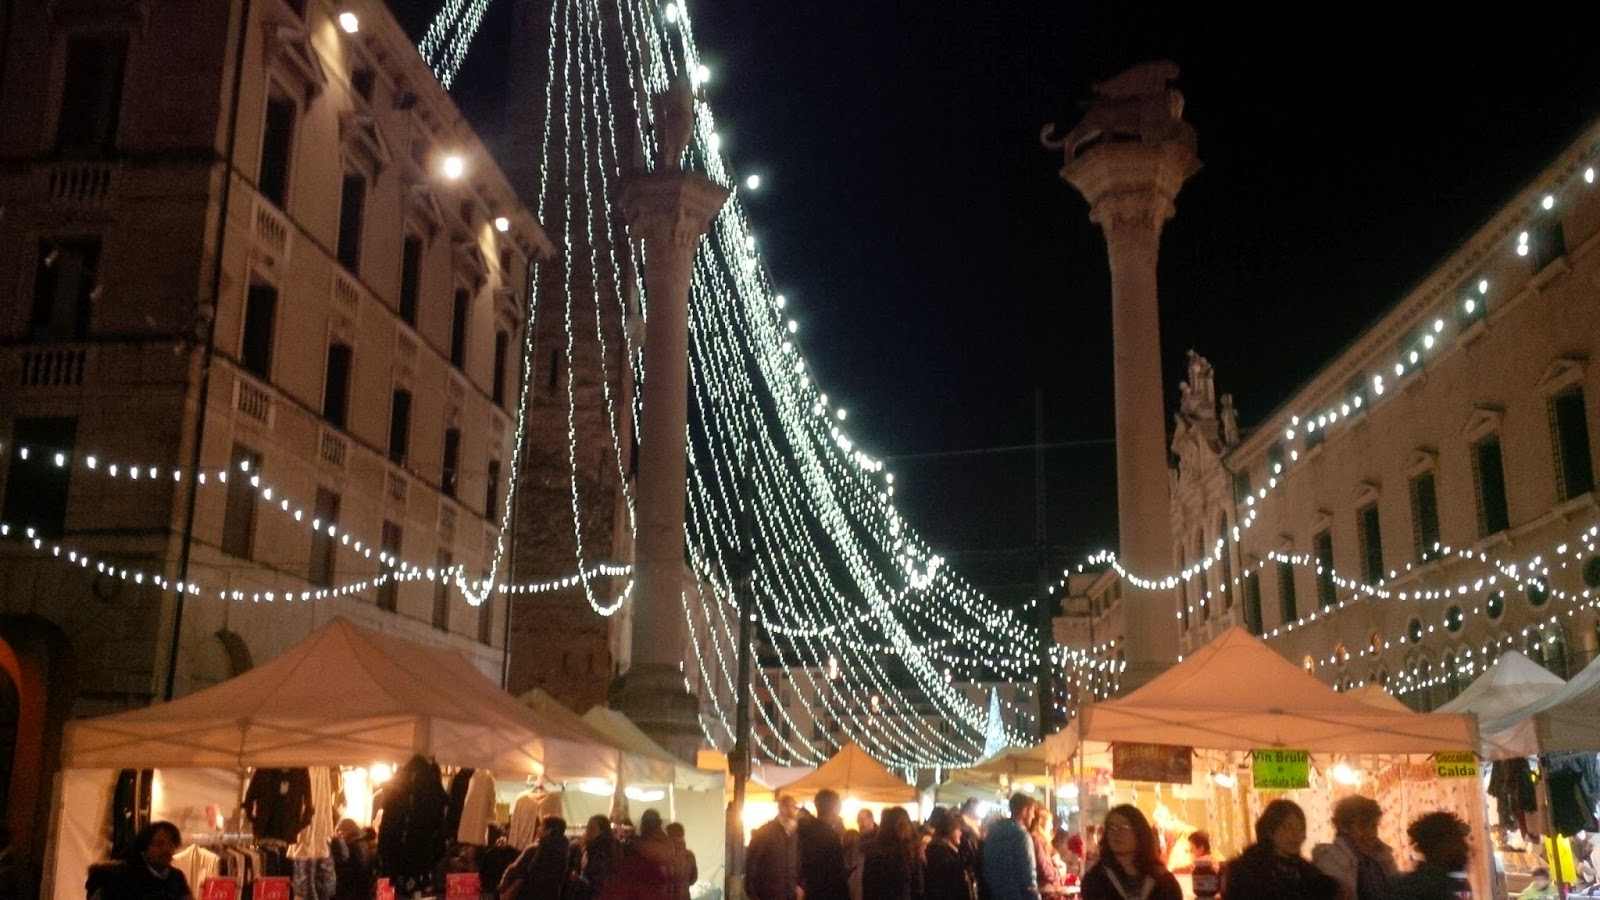 The Christmas market at Piazza dei Signori in Vicenza